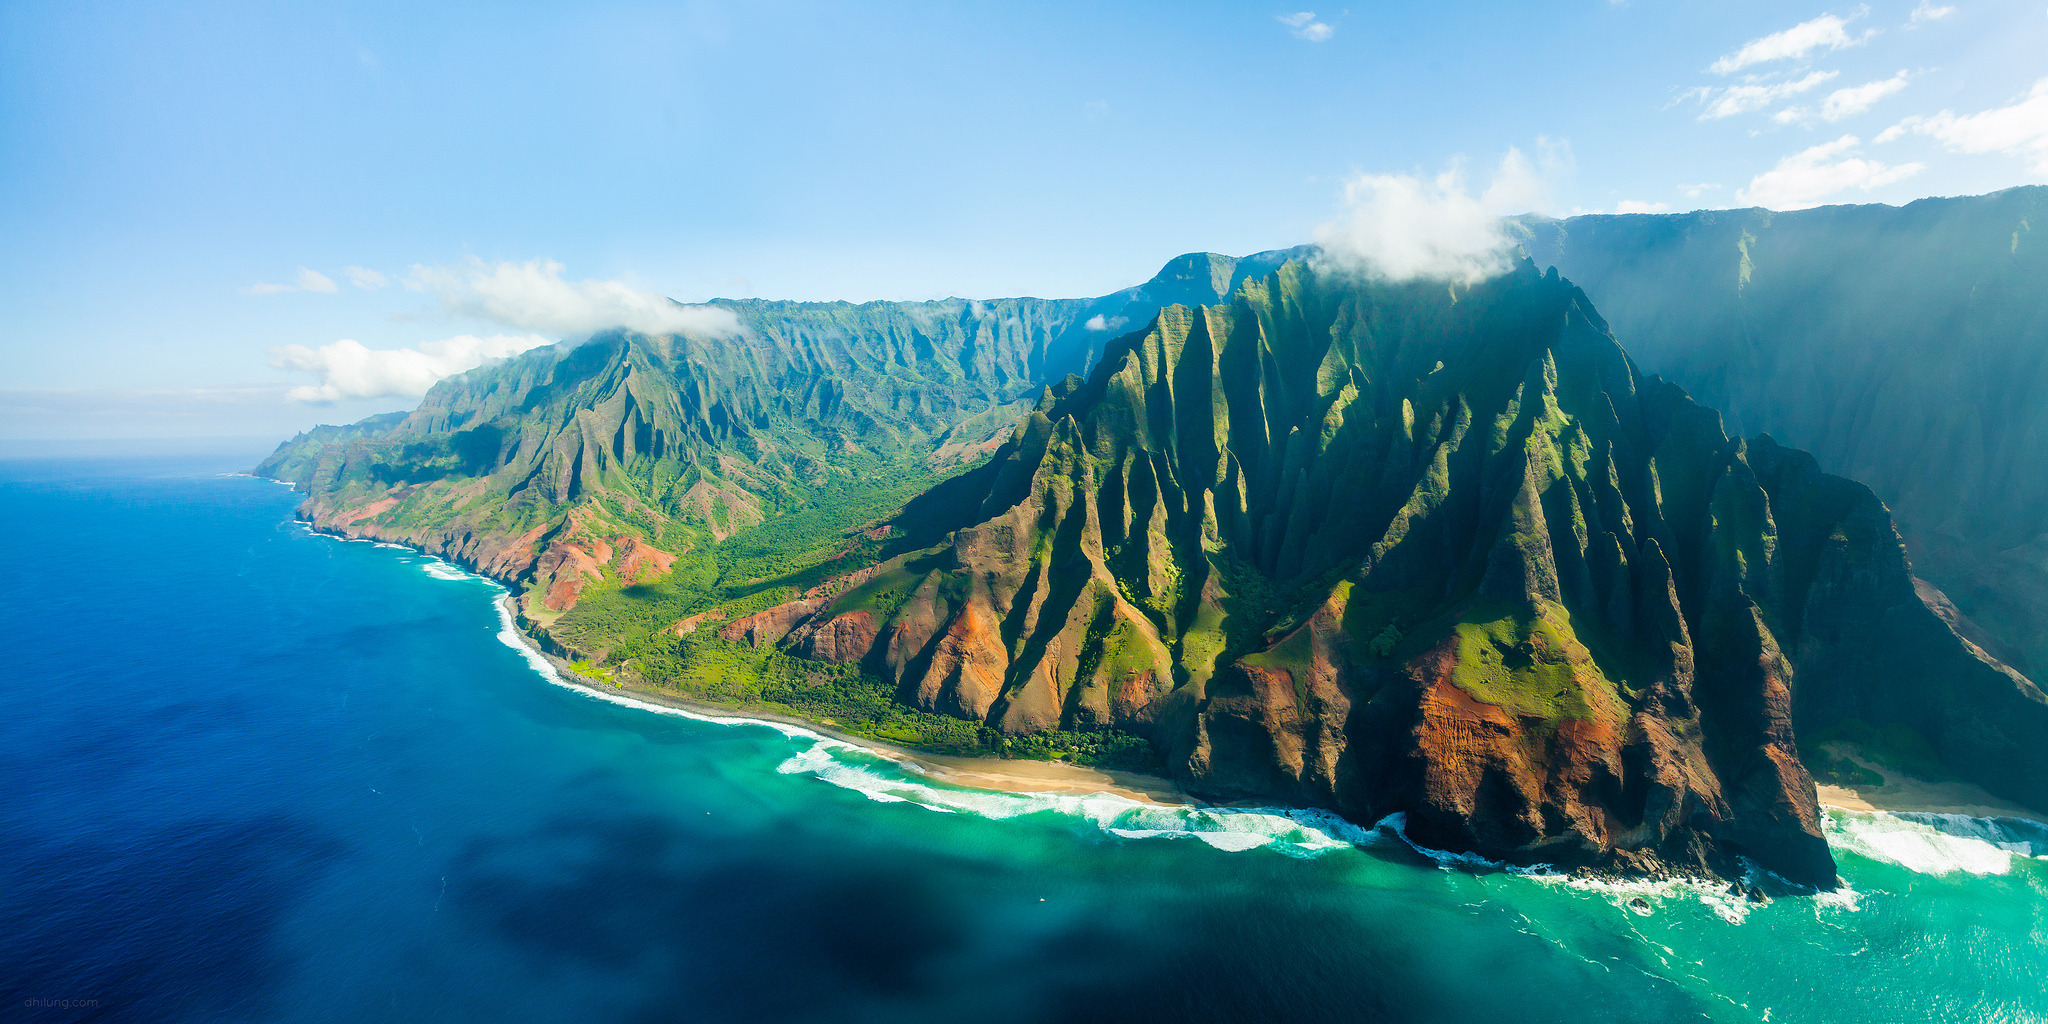 Na Pali Coast, Kauai, Hawaii - An aerial panorama shot taken from a helicopter. Many TV series and movies, including Jurassic Park, were filmed here in this Hawaiian island Kauai, also known as the 'Garden Isle'.